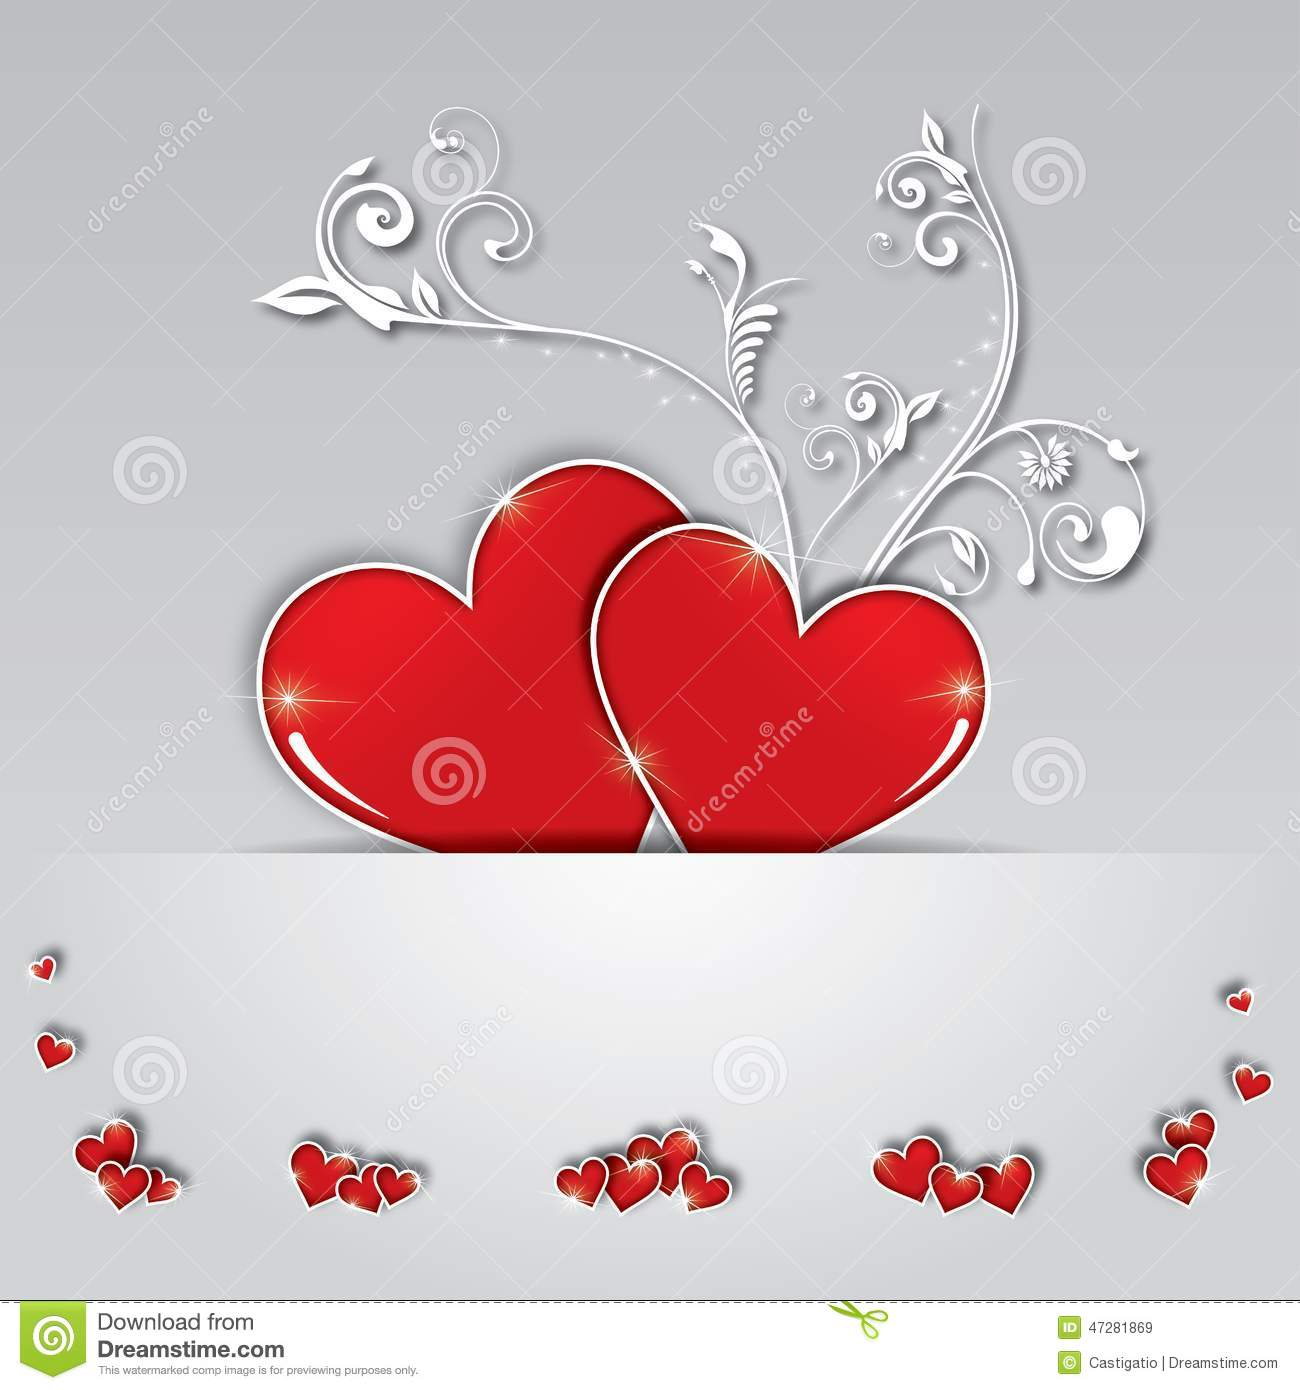 Valentines day love greetings card composition romantic stock valentines day love greetings card composition romantic kristyandbryce Image collections